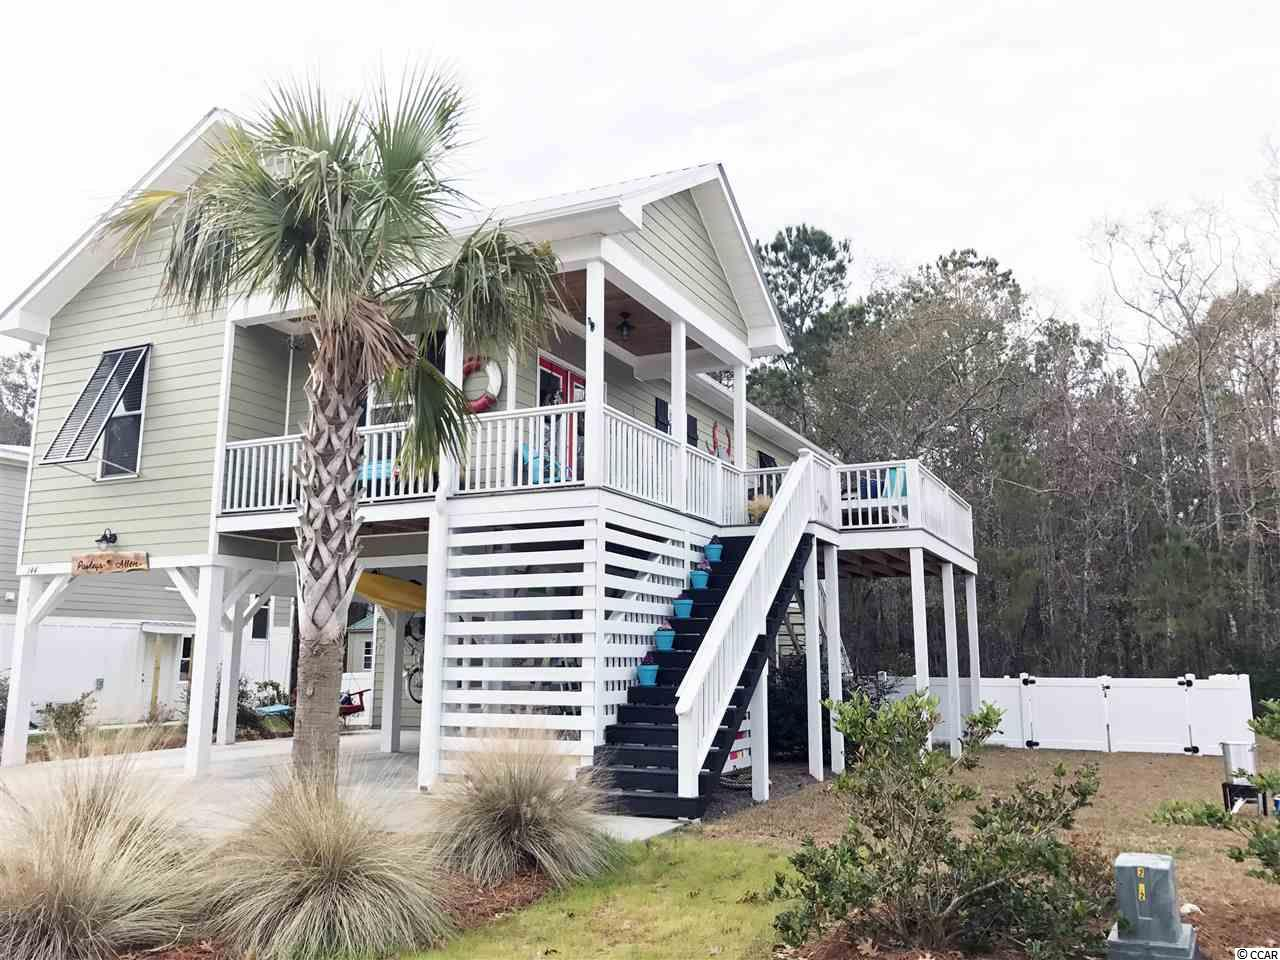 Pawleys Pointe house for sale in Pawleys Island, SC